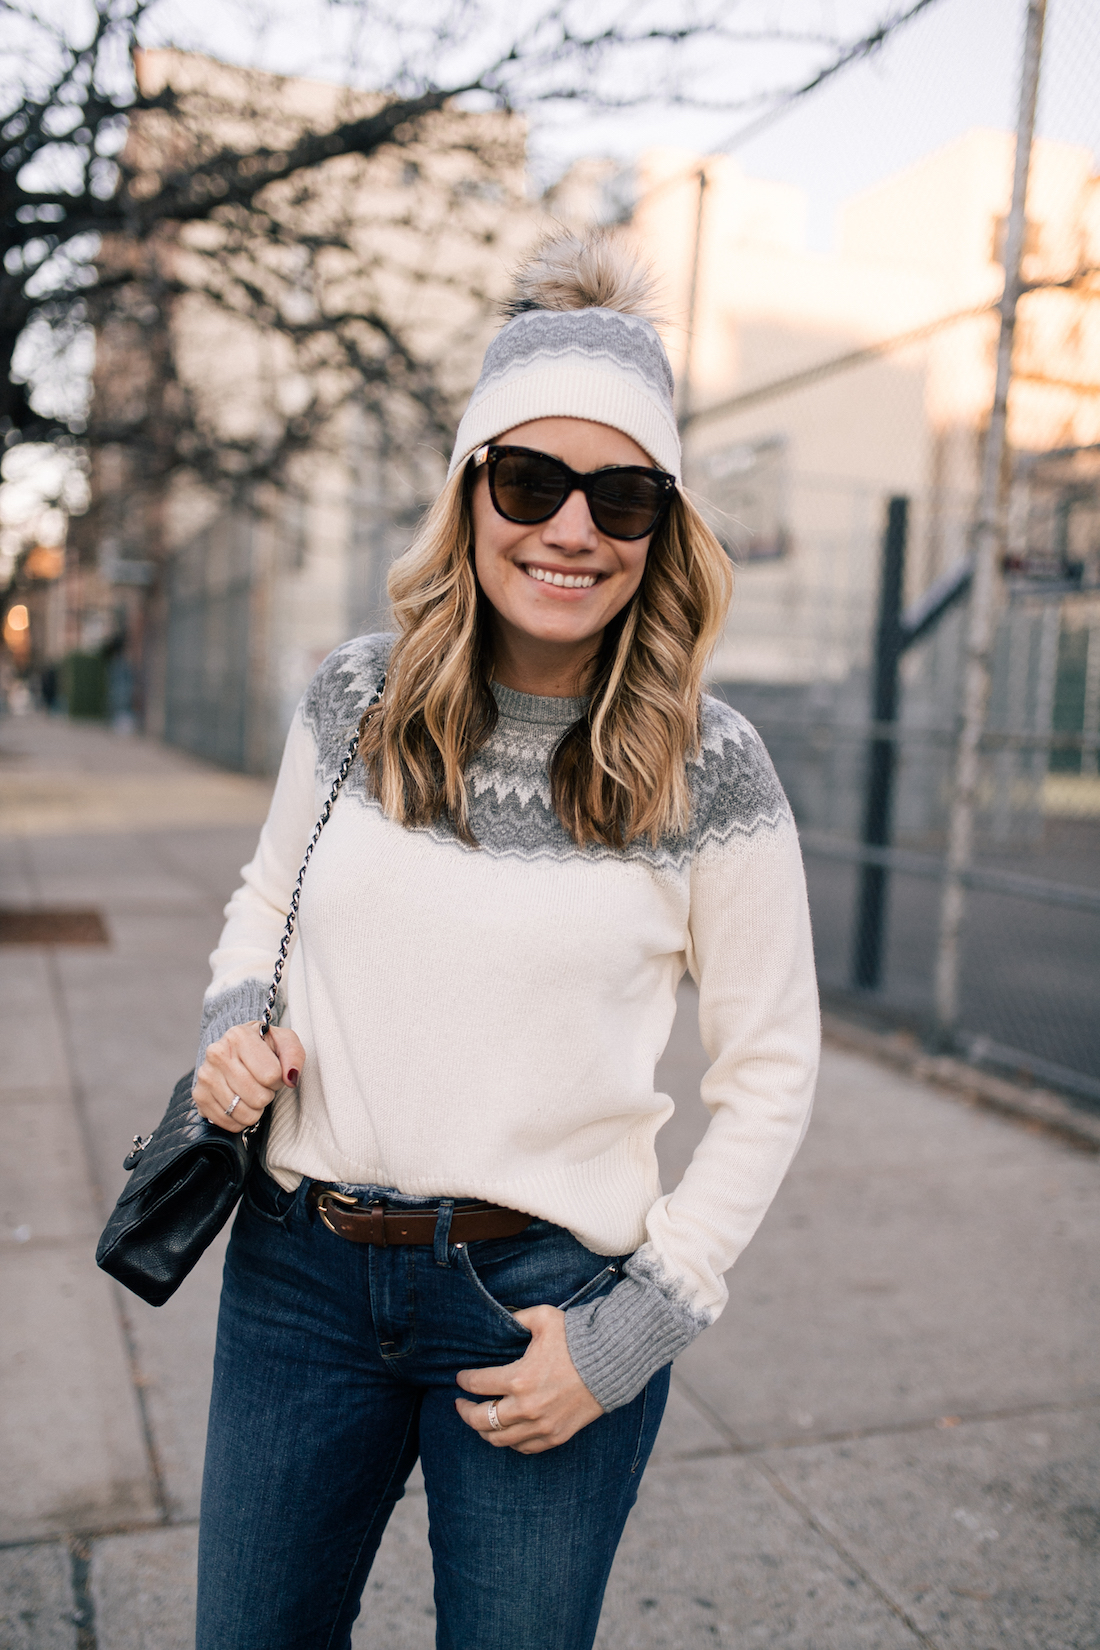 Outfit Details: Vineyard Vines Sweater + Hat (c/o) // Good American Jeans / Polaroid Sunglasses